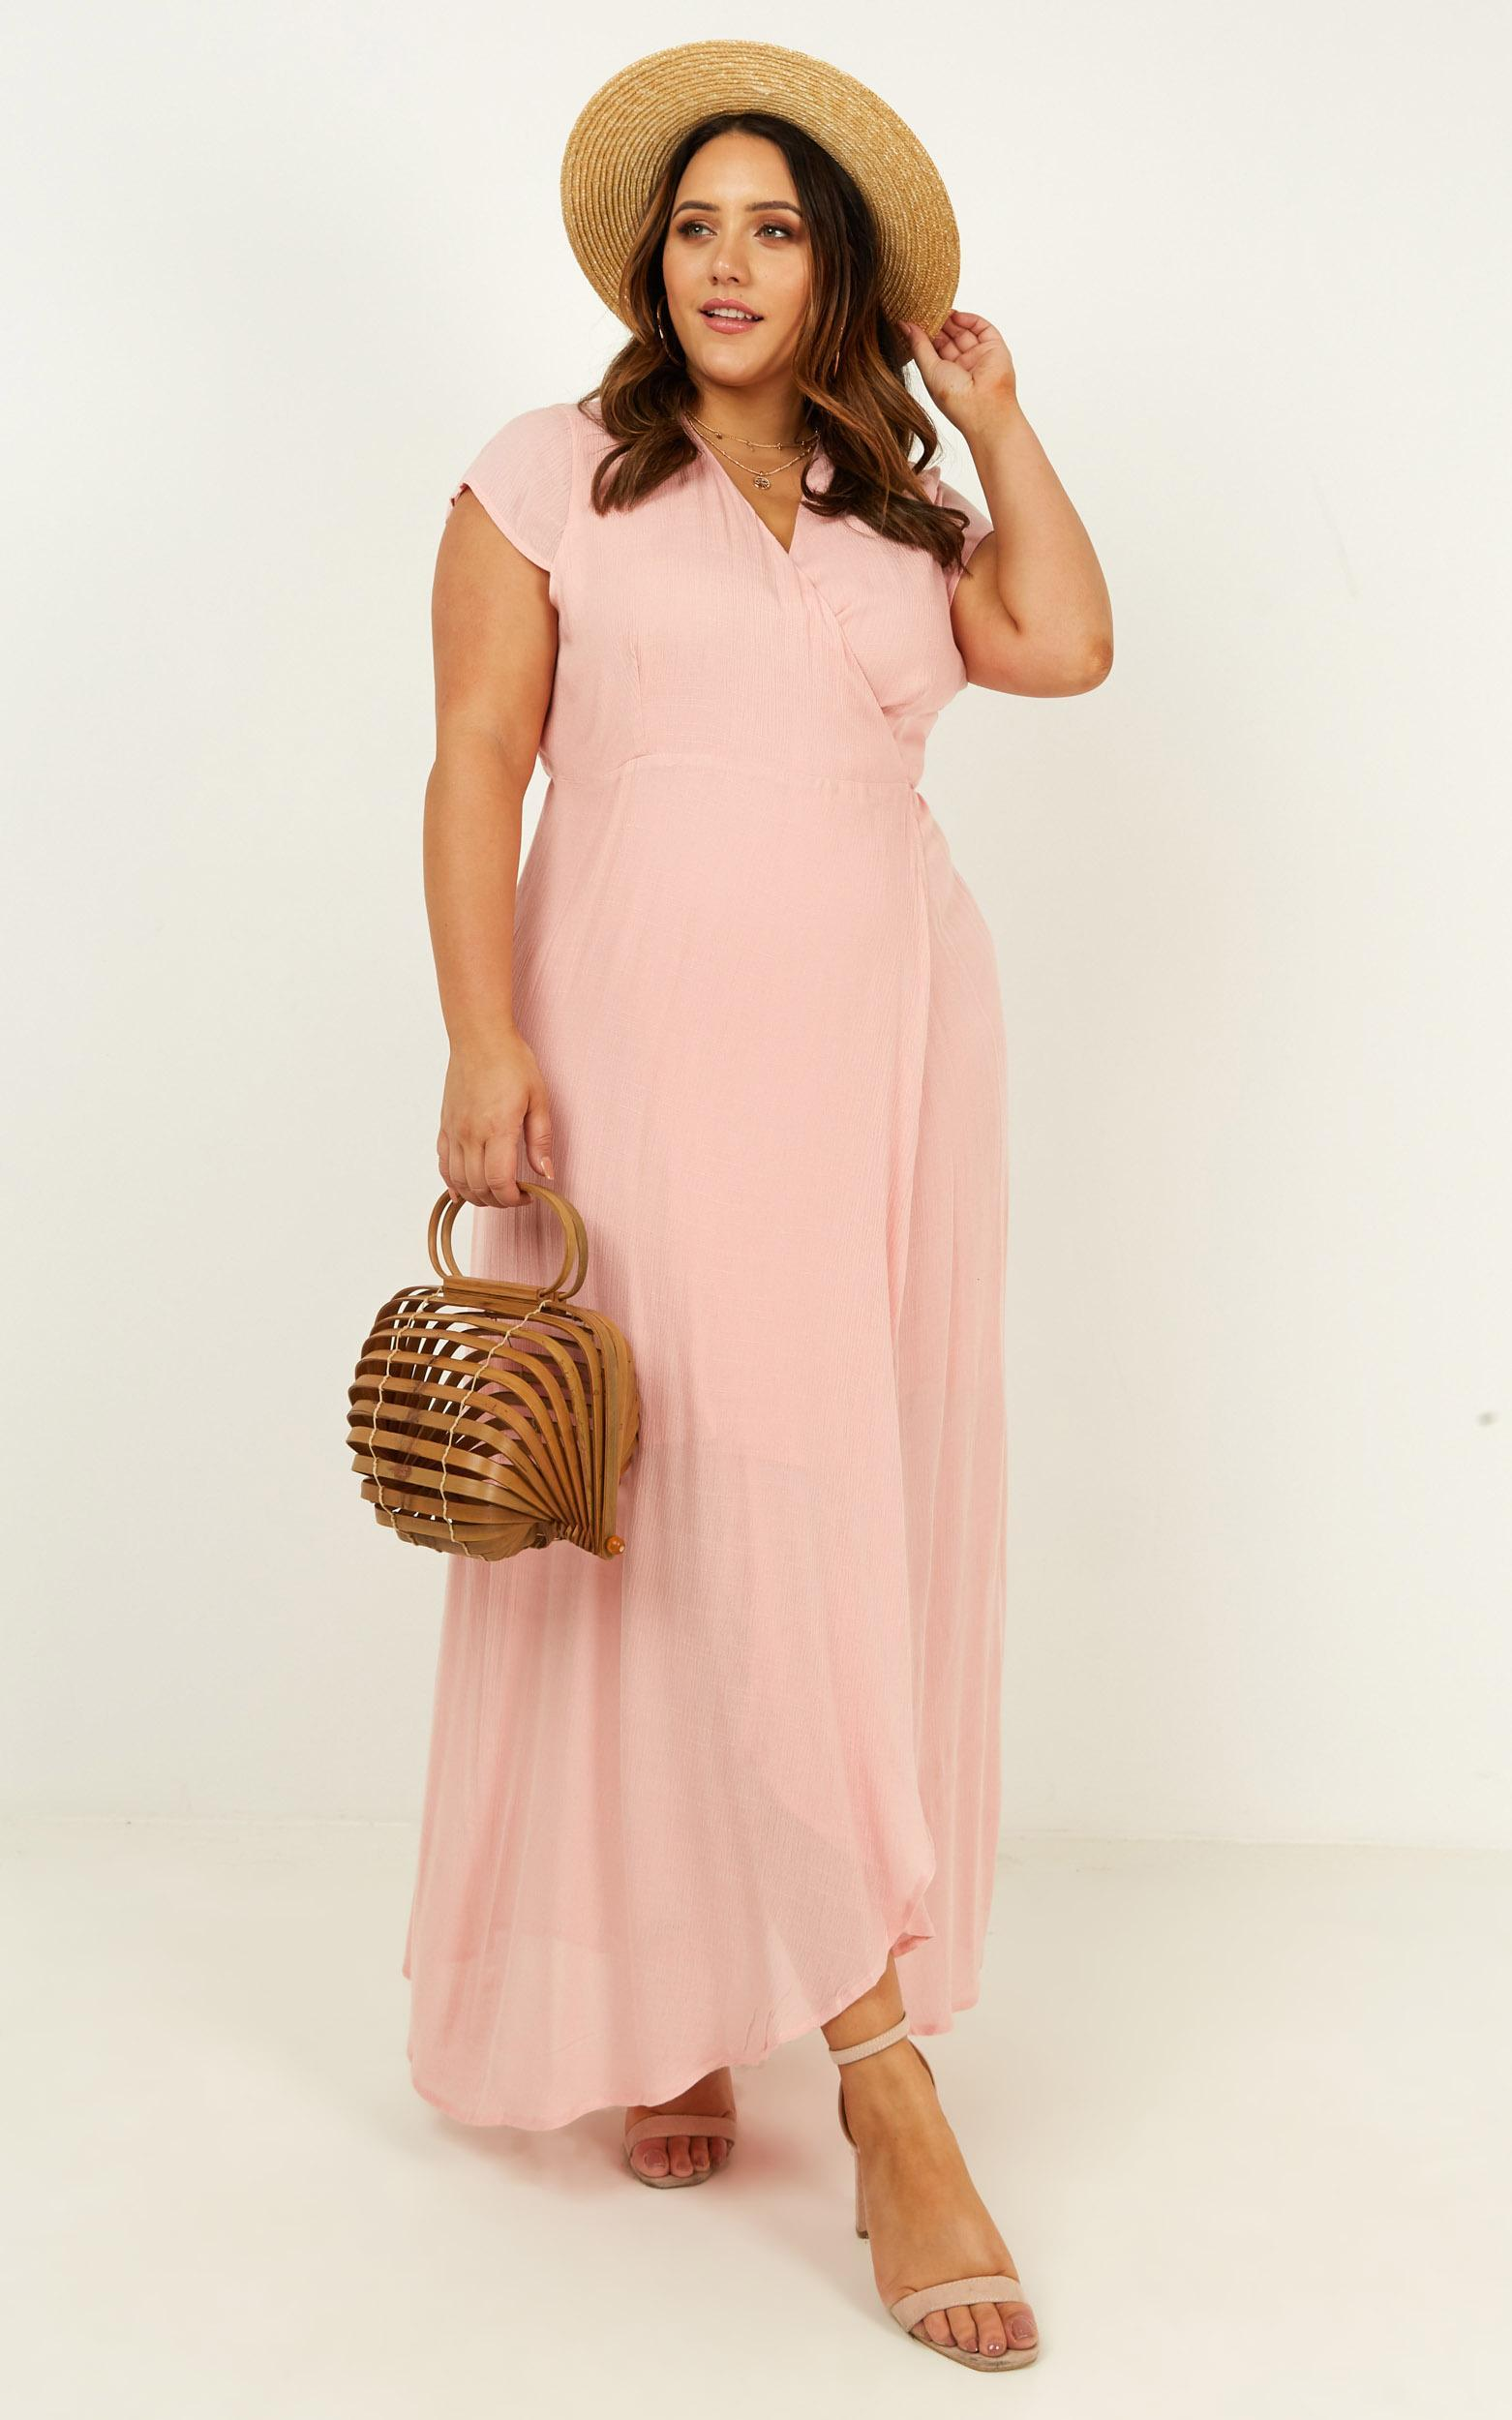 Paradise Looks Dress in blush linen look - 20 (XXXXL), Blush, hi-res image number null